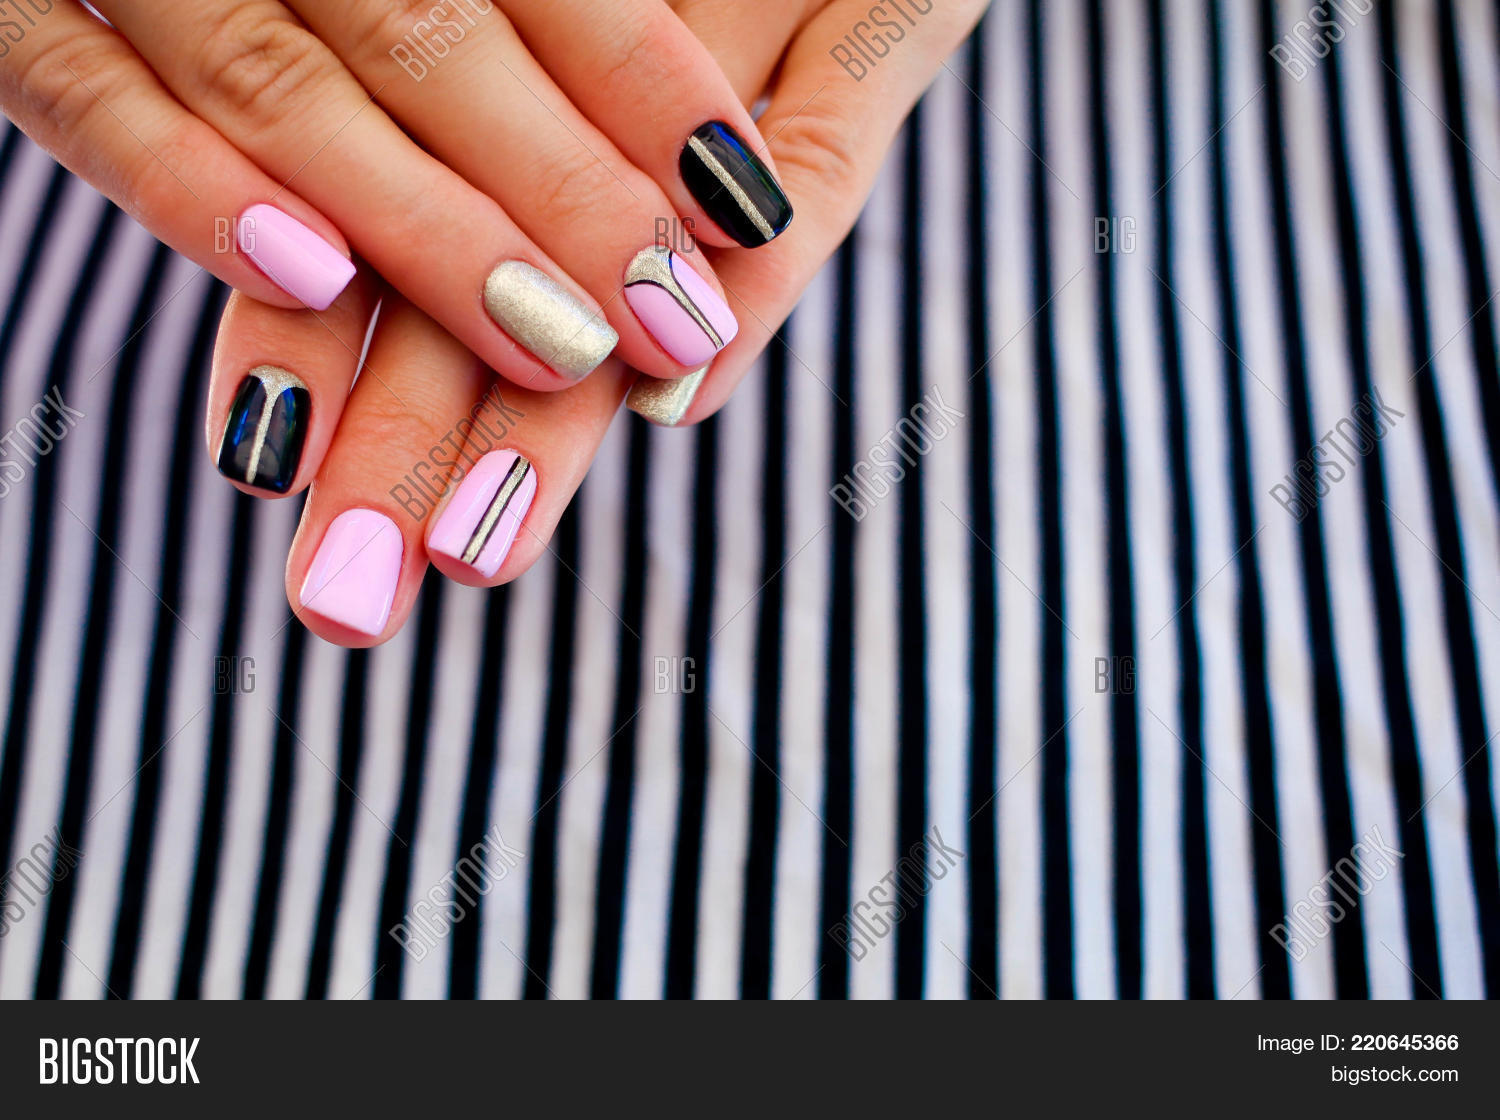 Natural Nails, Gel Image & Photo (Free Trial) | Bigstock